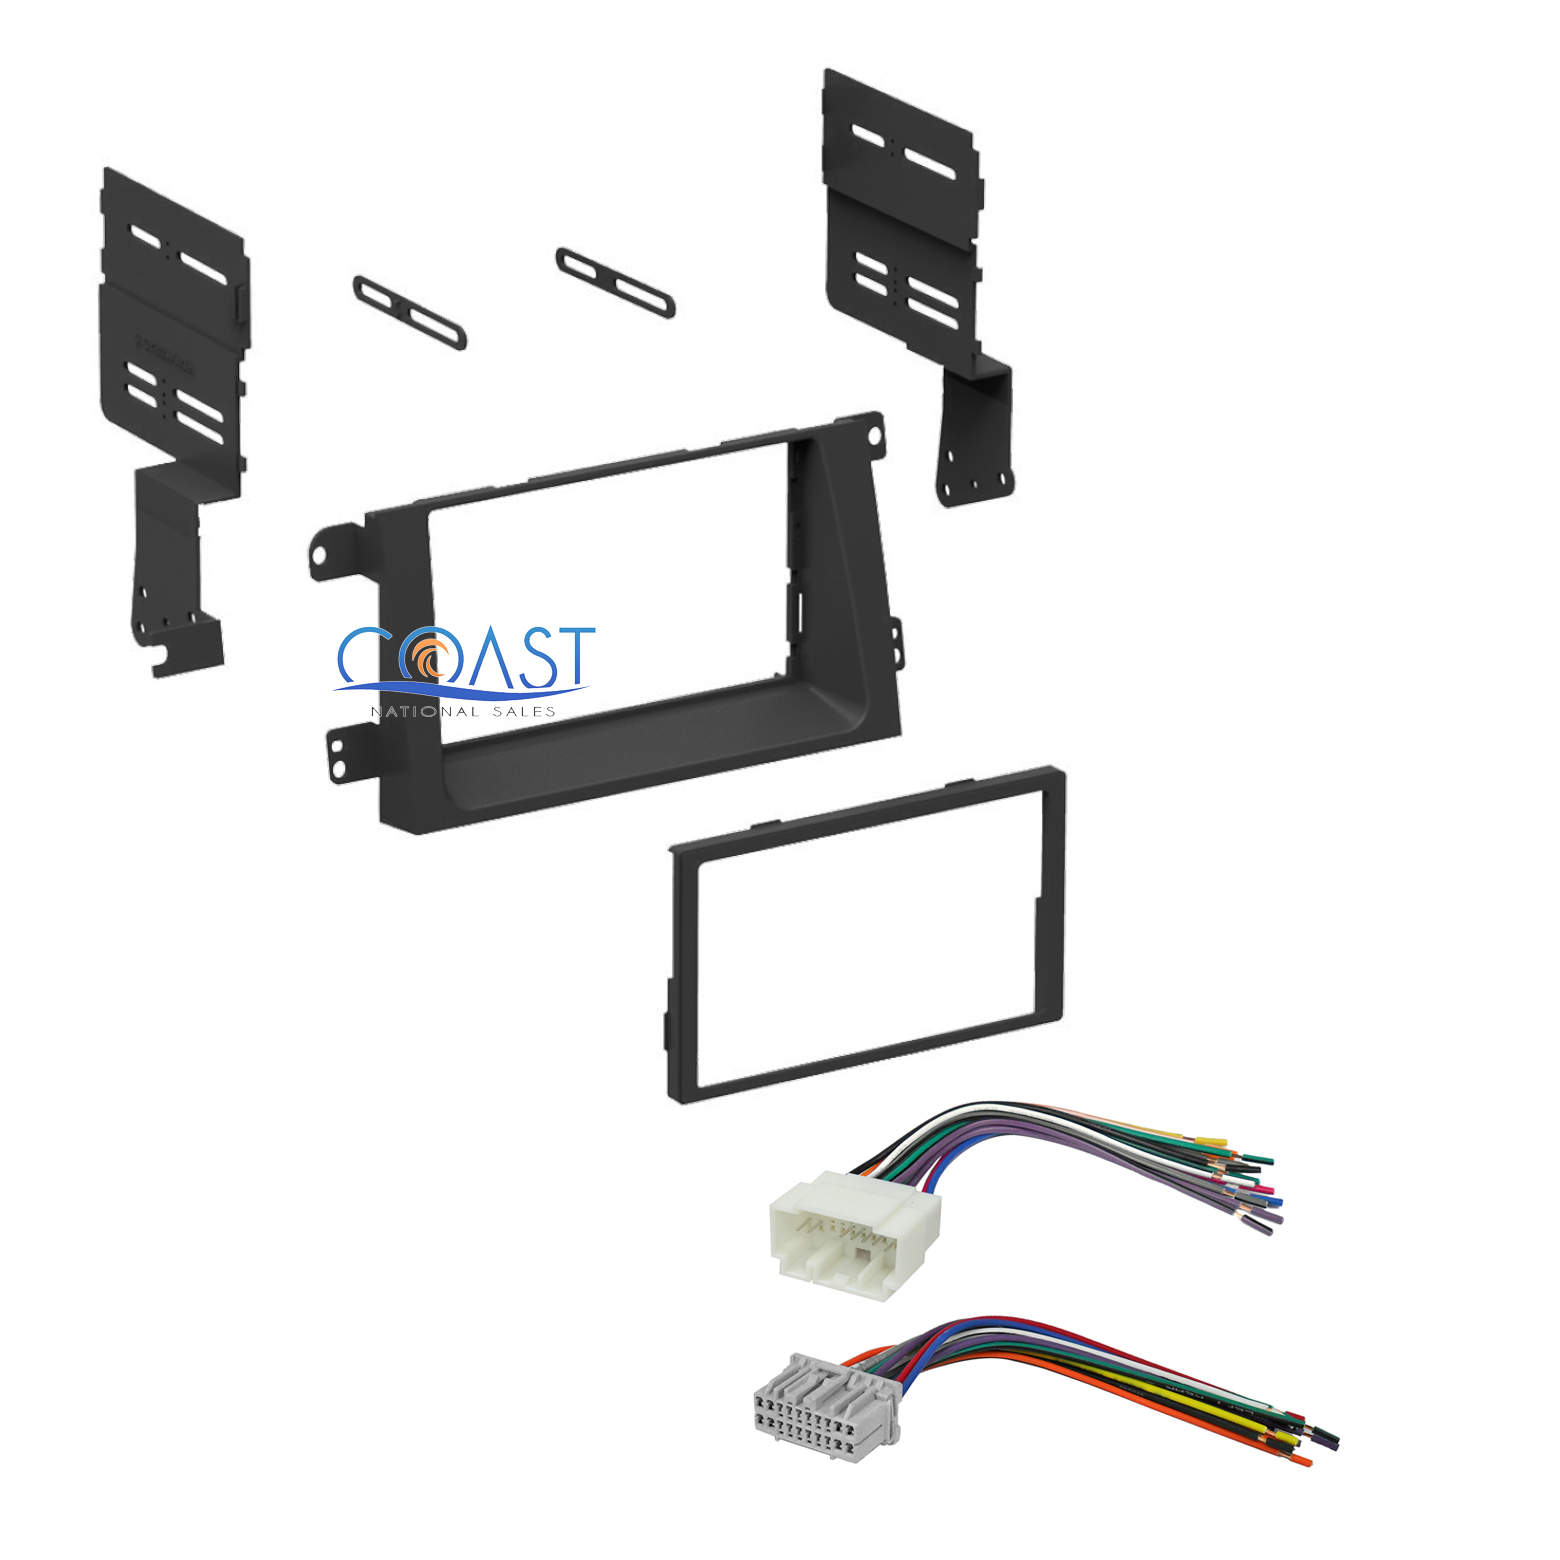 Honda Ridgeline Instrument Panel Lights: Single Double DIN Car Stereo Dash Kit With Harness For